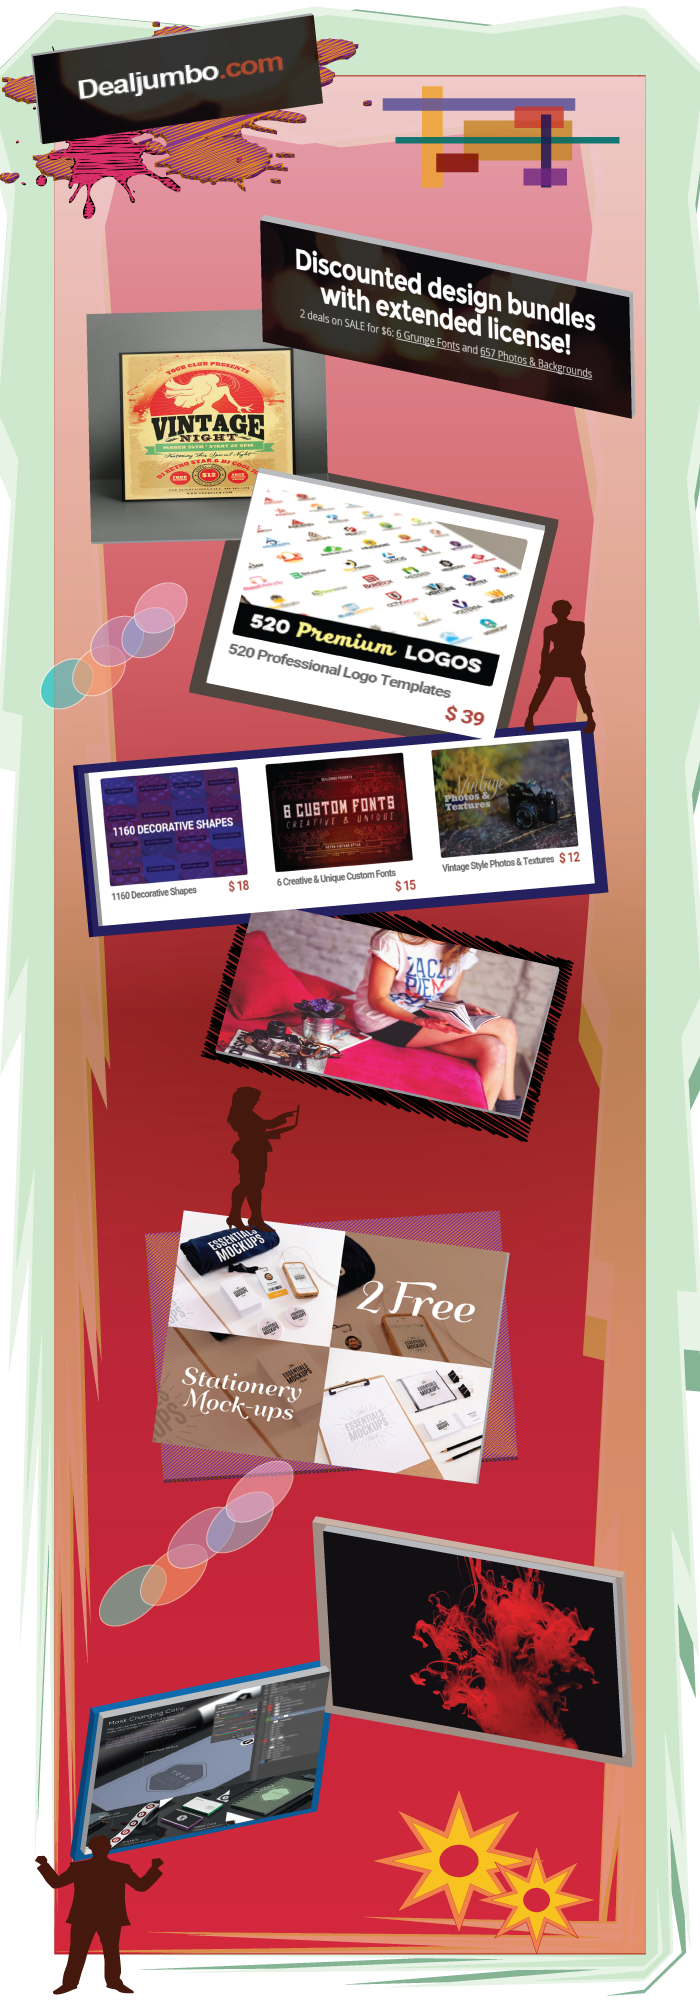 dealjumbo-graphic-design-bundles-04